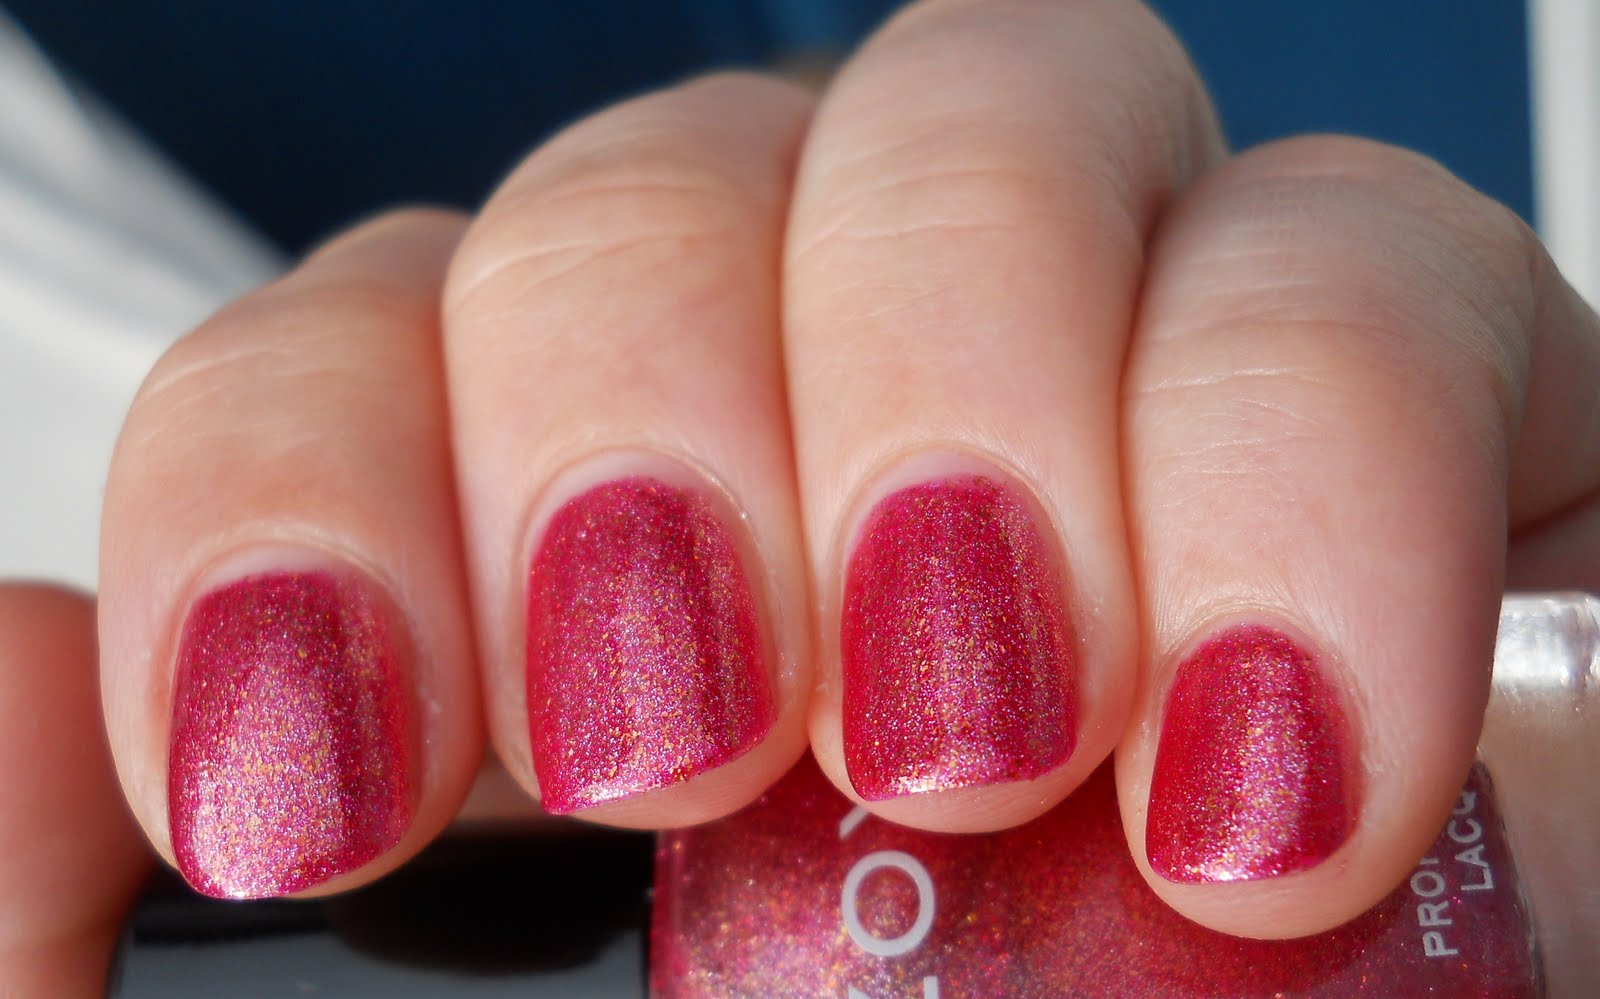 Ali S Nail News Zoya Sale And Zoya Spam 40 Different Colors Bottle And Swatch Pics